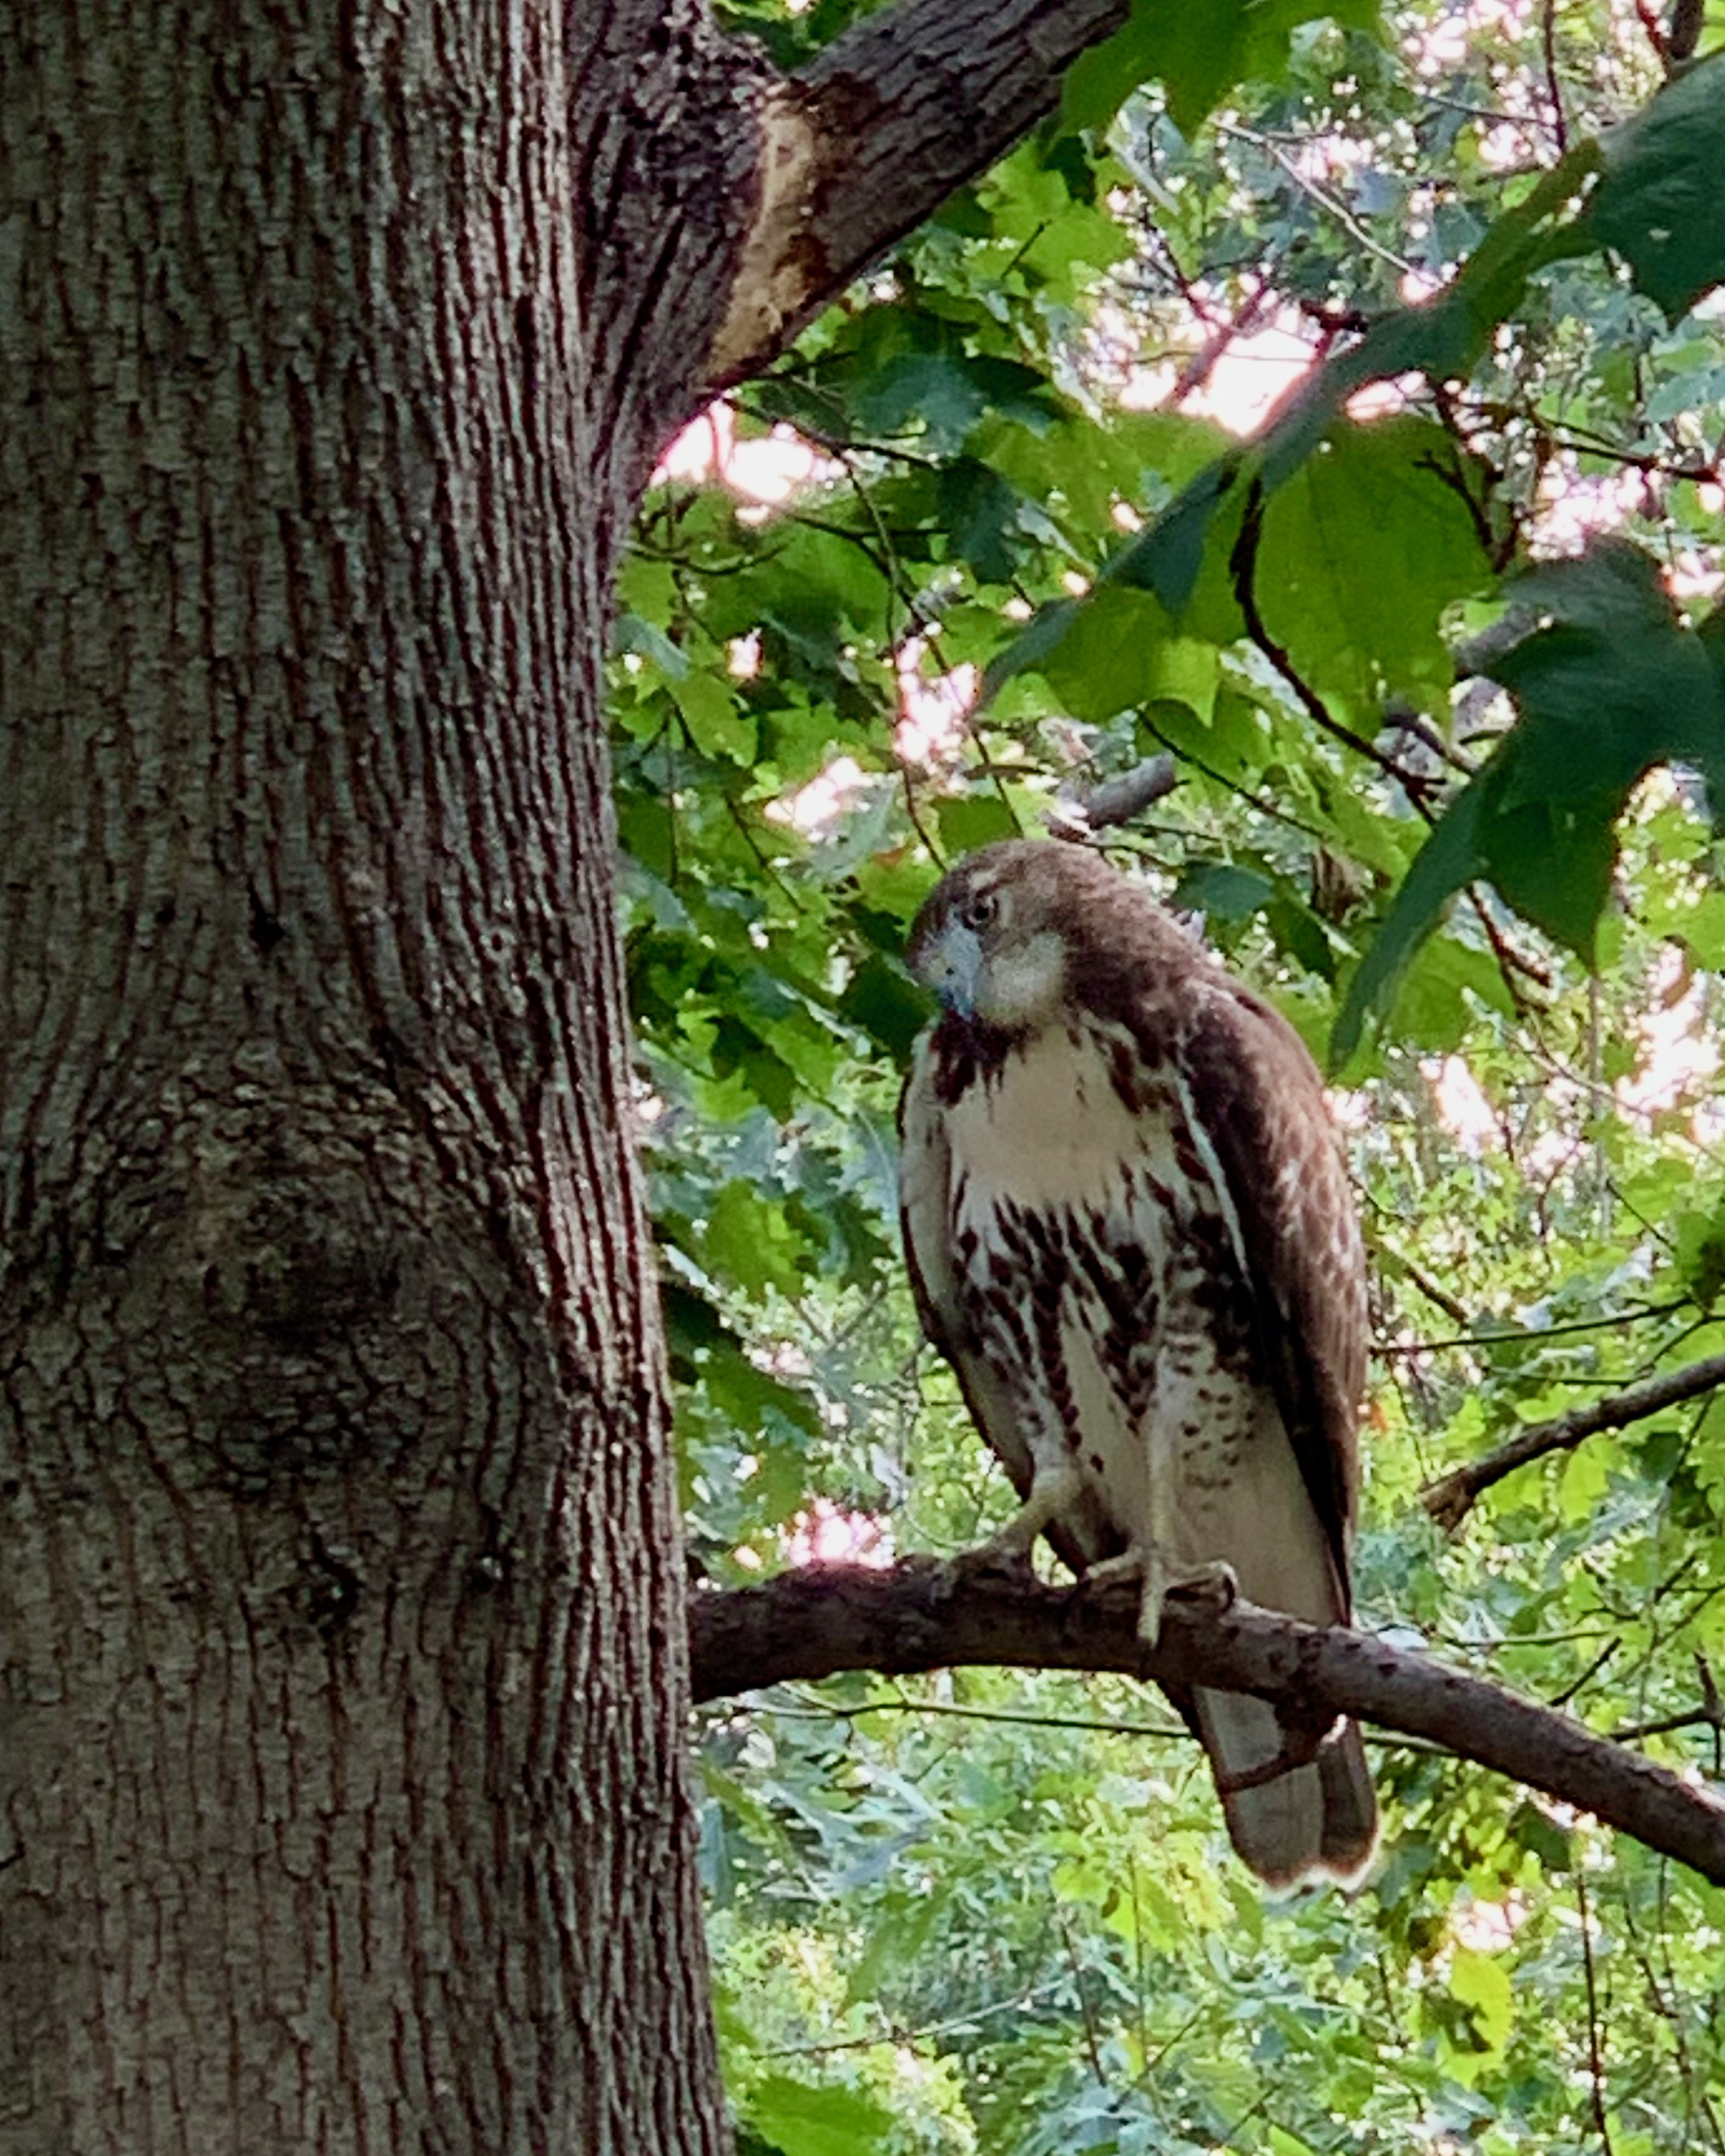 A red-tailed stares at squirrel hidden from view in New York City